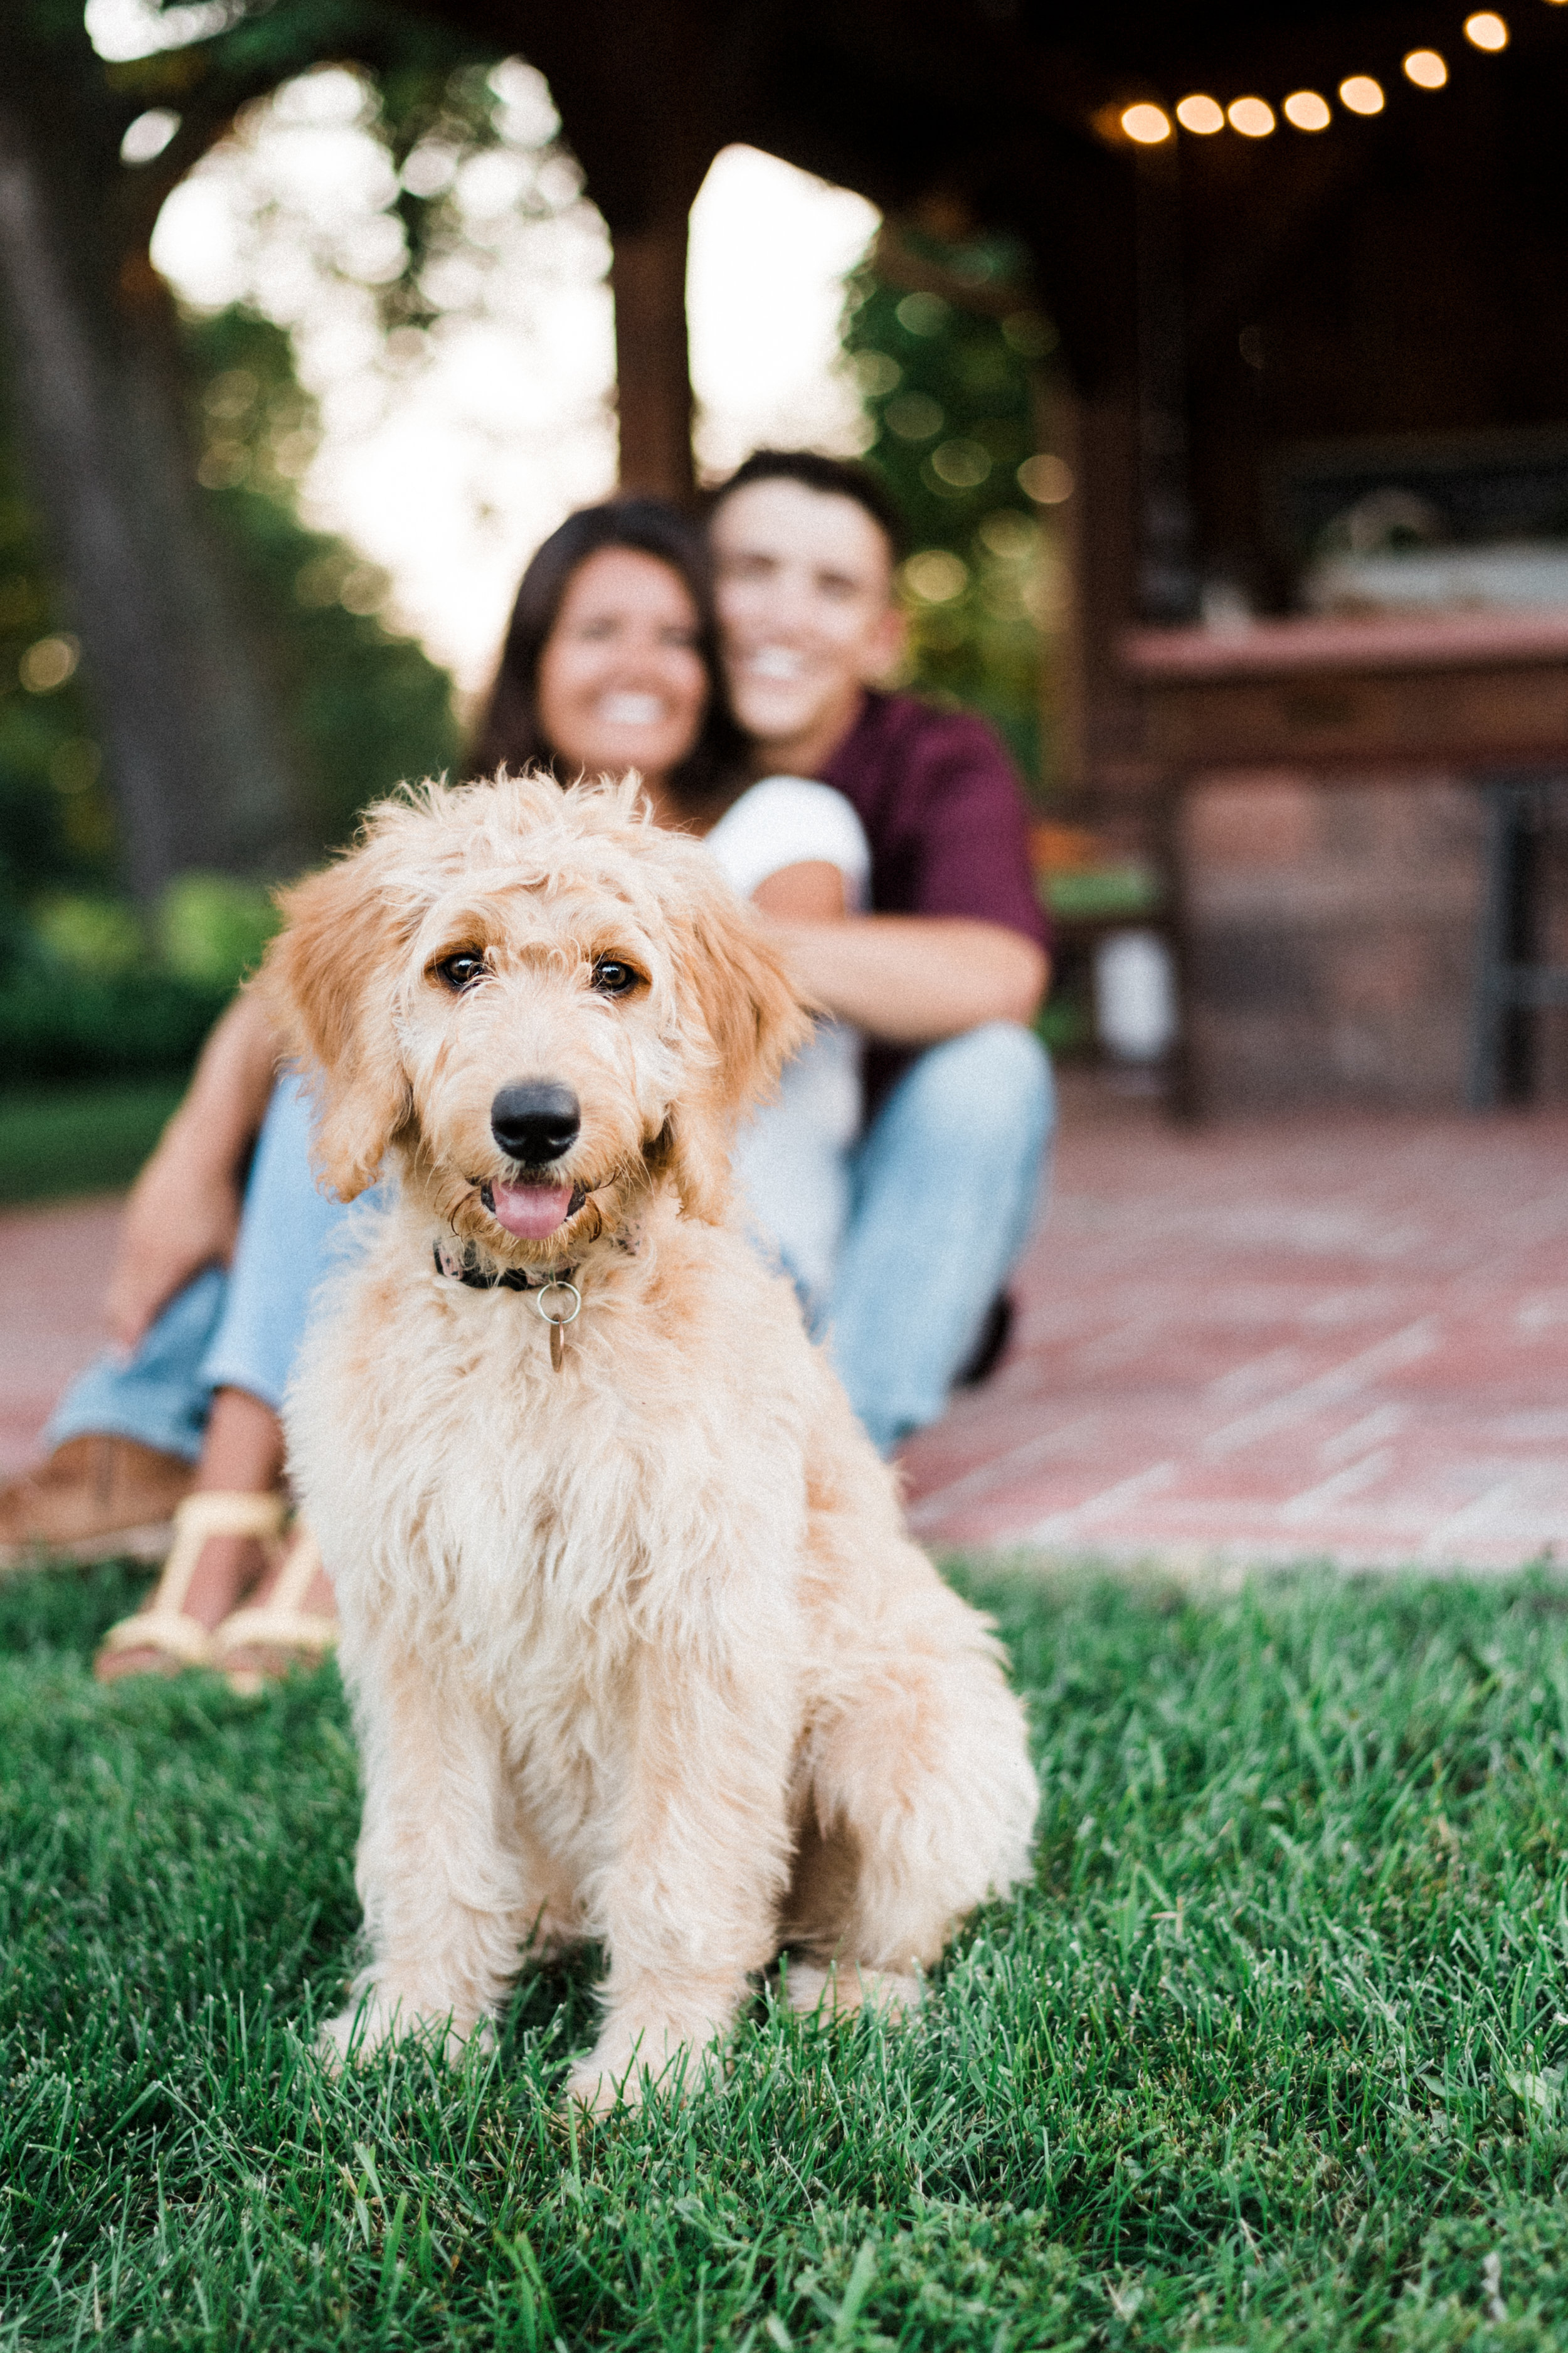 Engaged couple watches their Goldendoodle as she poses for the camera.